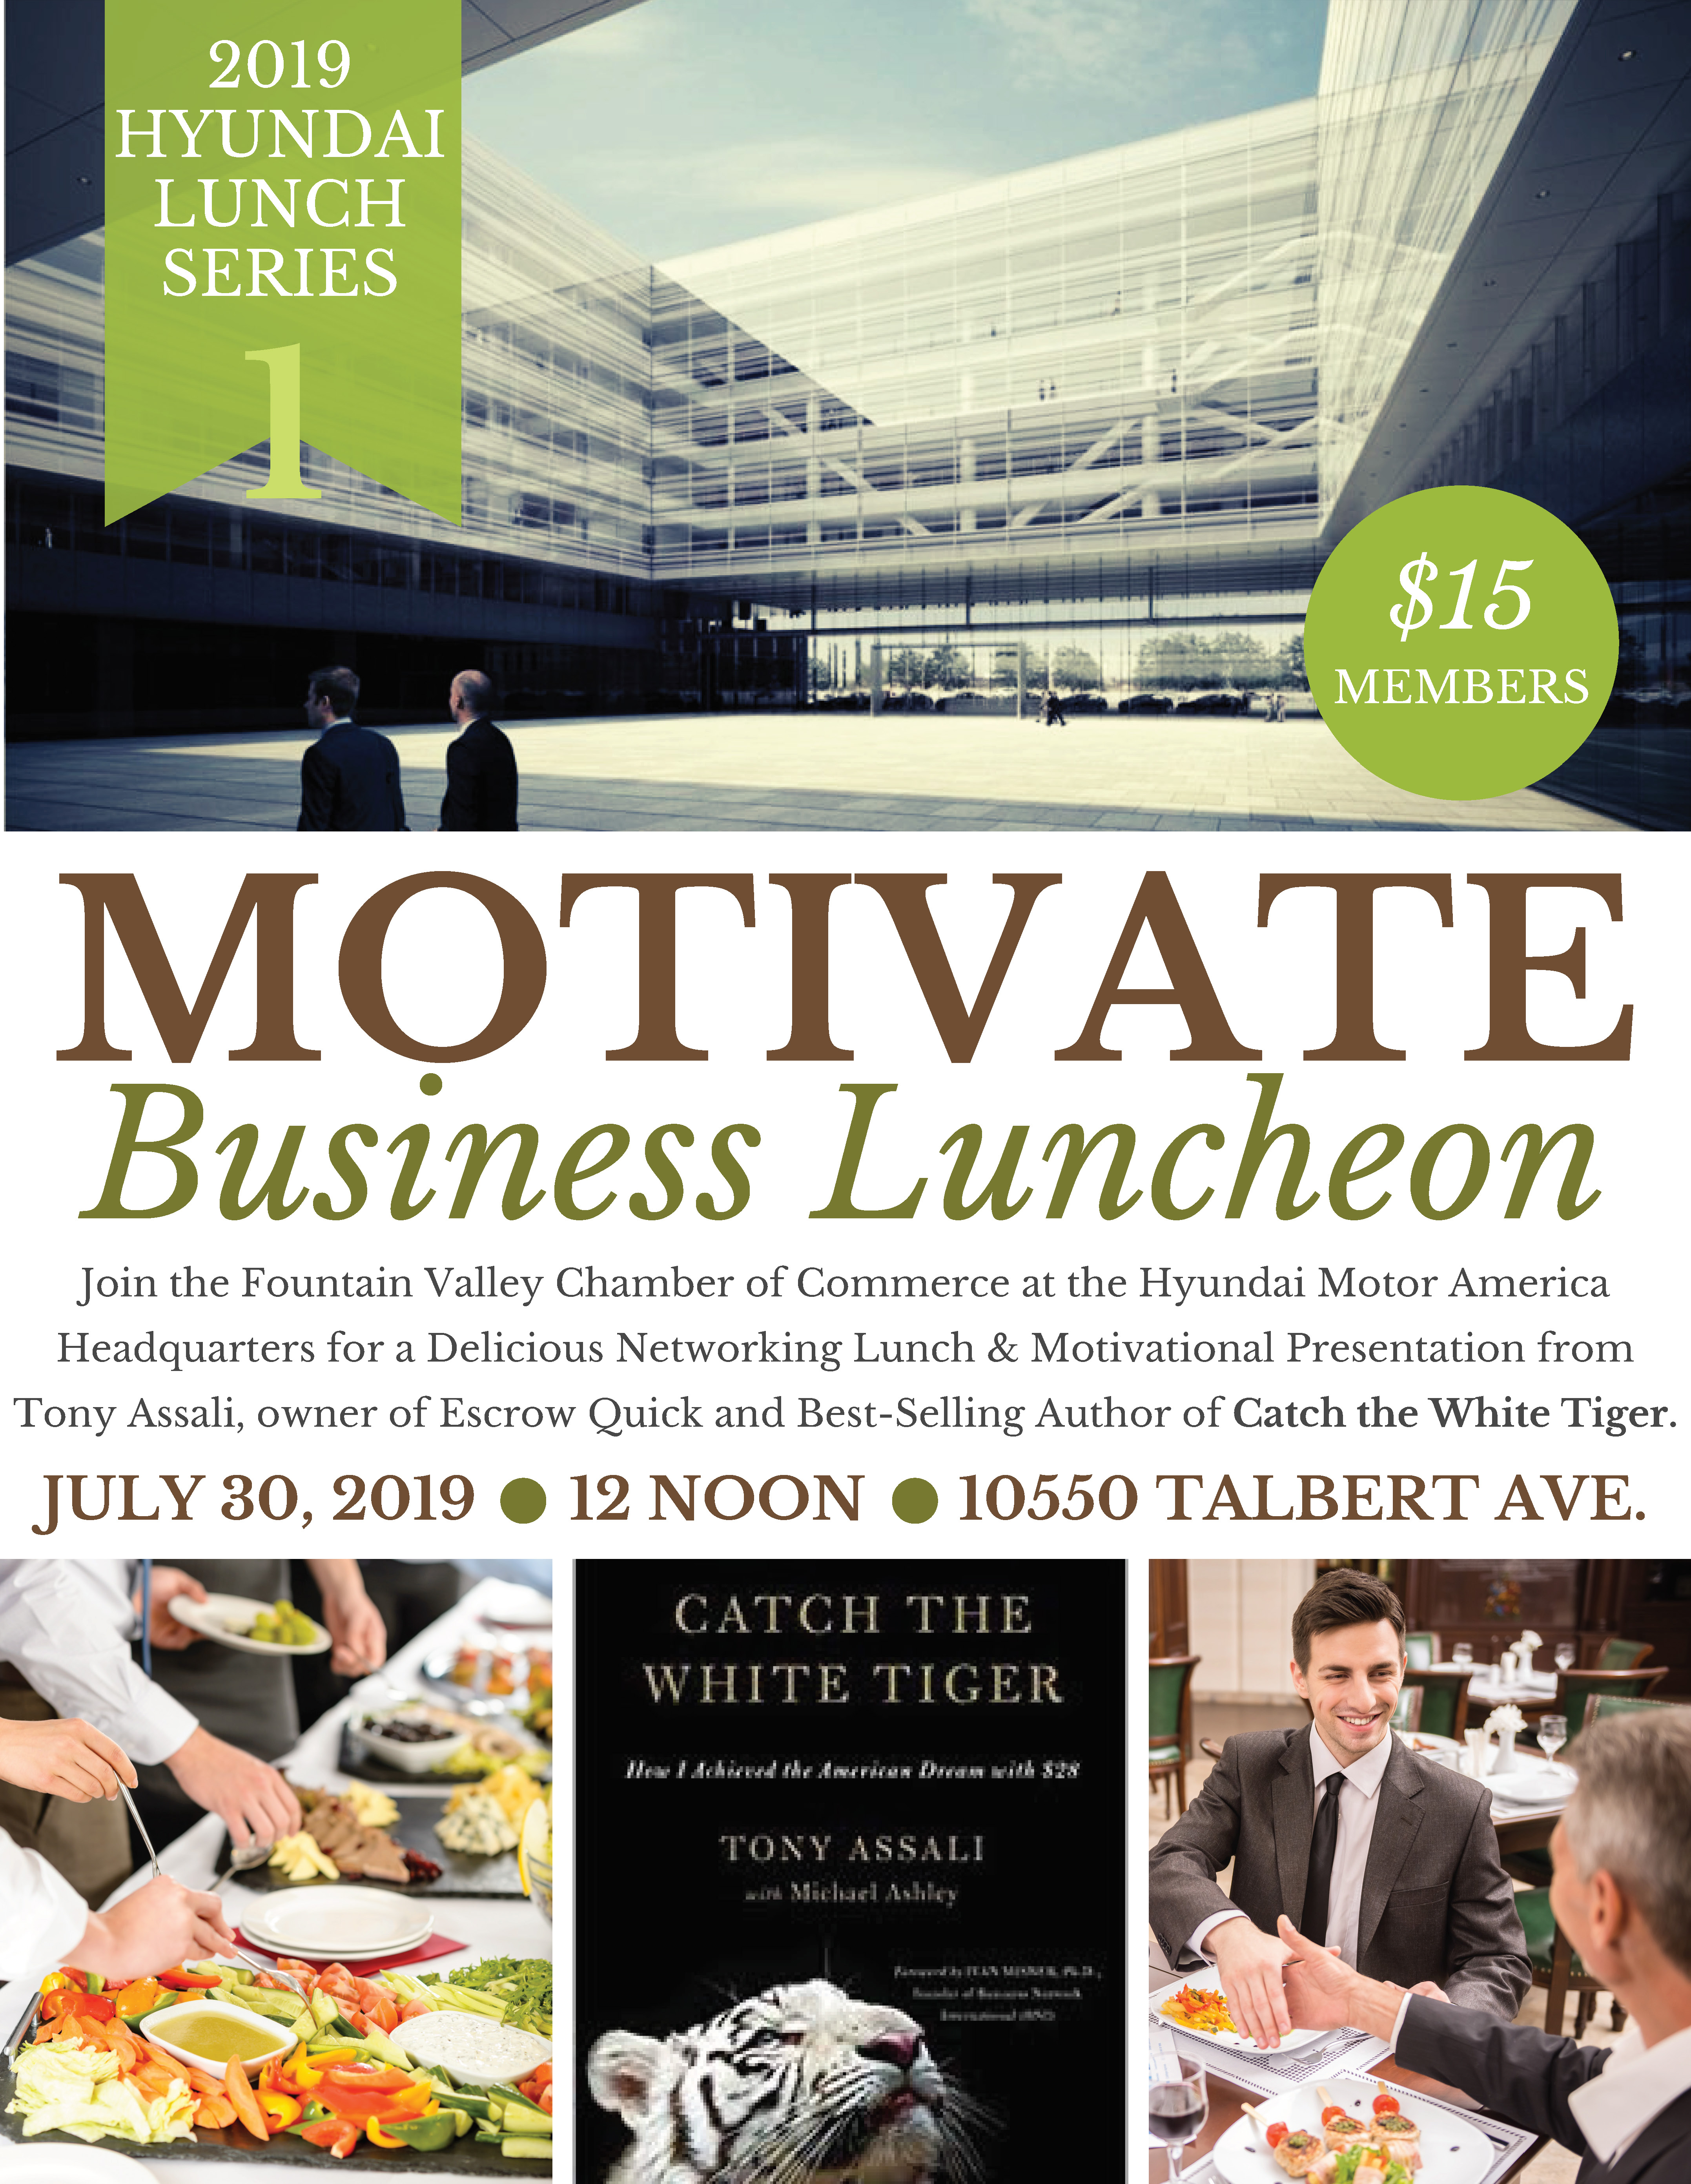 Motivate Business Luncheon